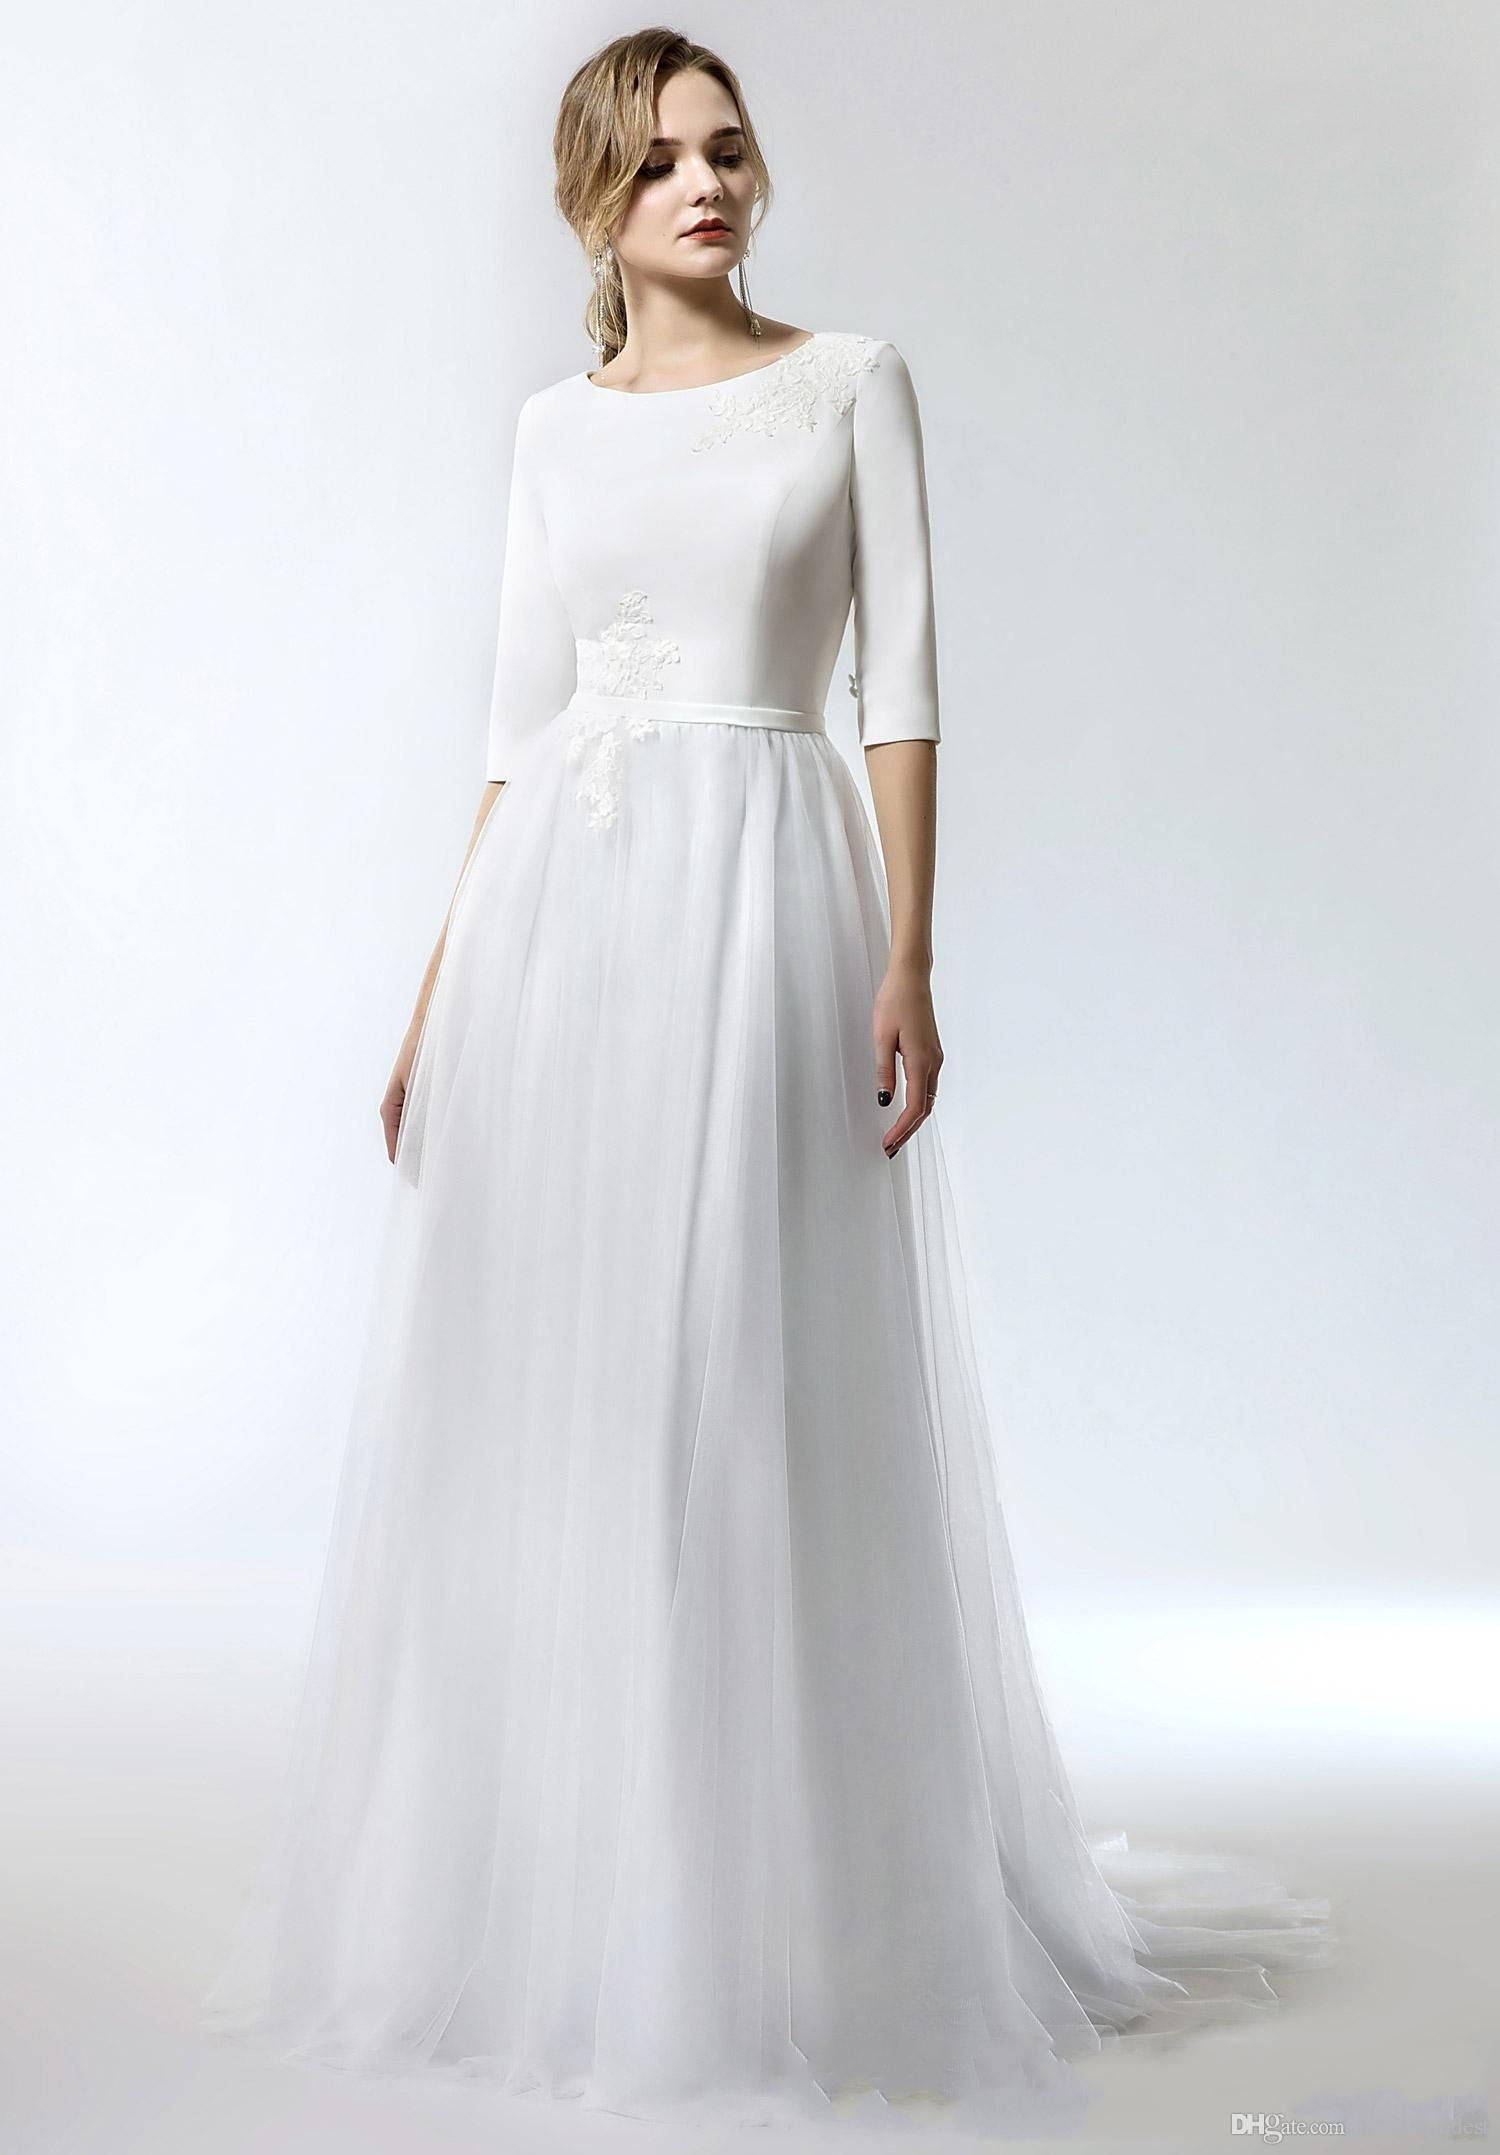 2019 New Simple Aline Long Modest Wedding Dress With 1/2